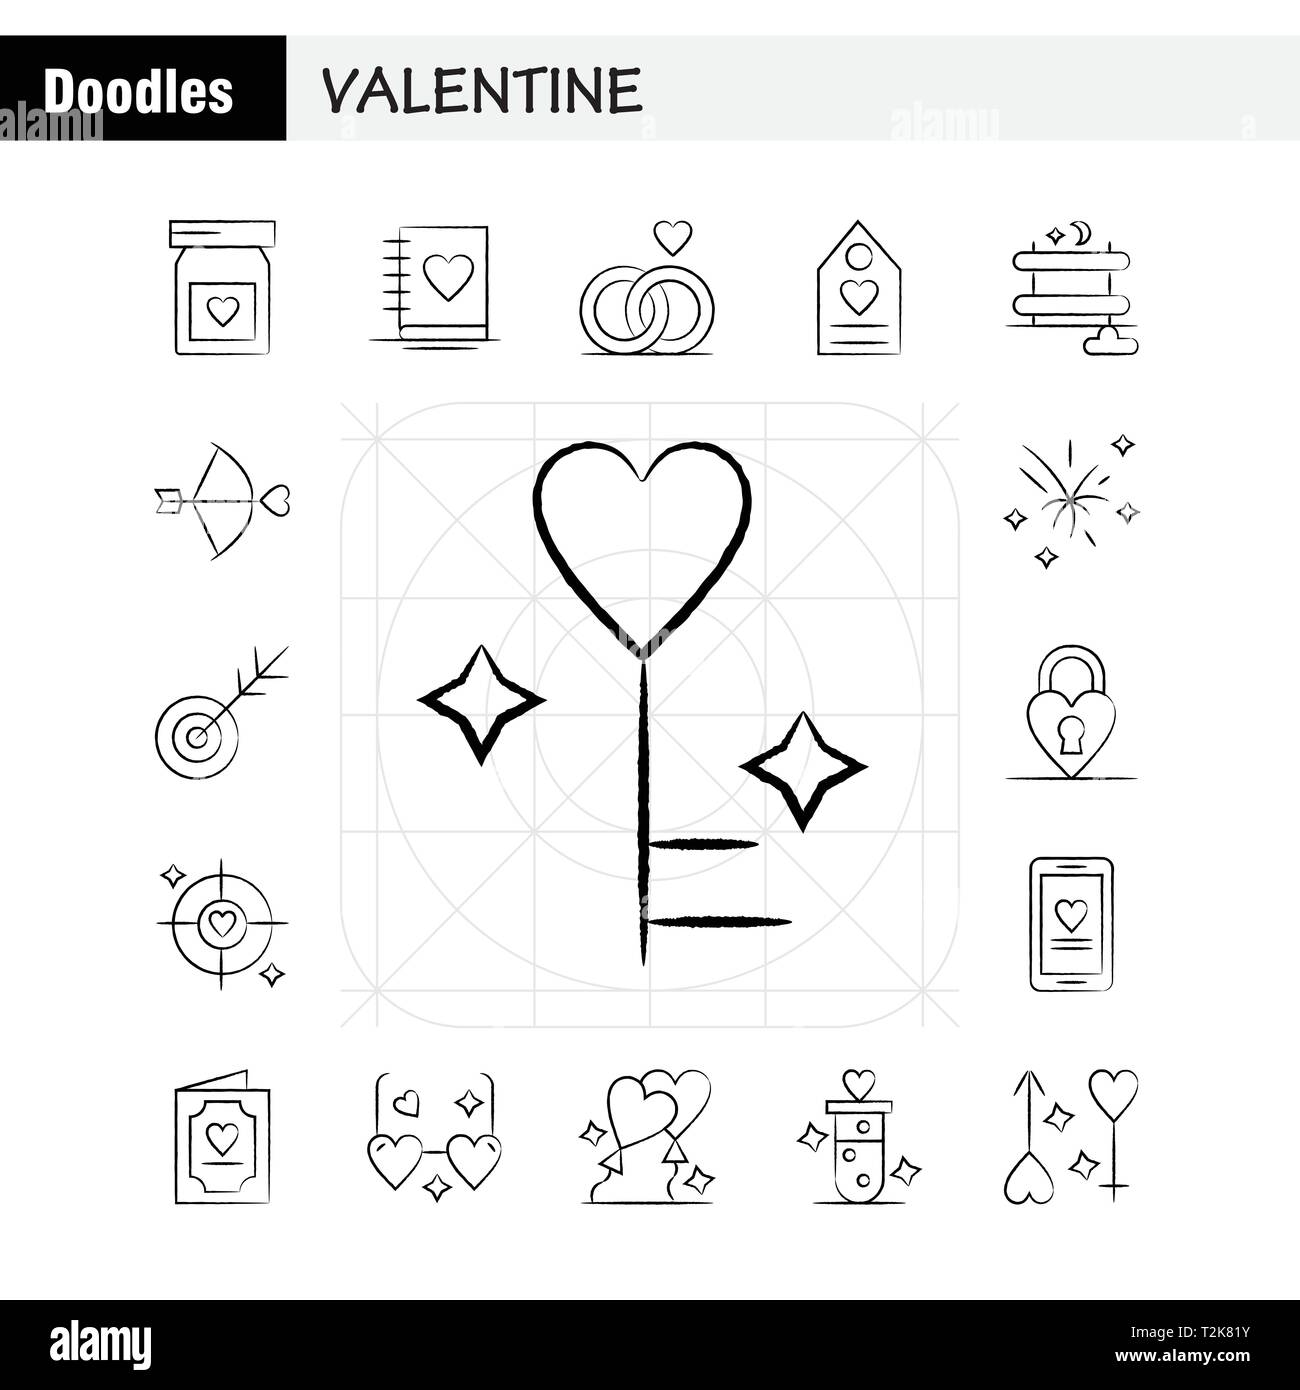 Valentine Hand Drawn Icons Set For Infographics, Mobile UX/UI Kit And Print Design. Include: Bottle, Medicine, Love, Valentine, Romantic, Book, Love,  - Stock Image